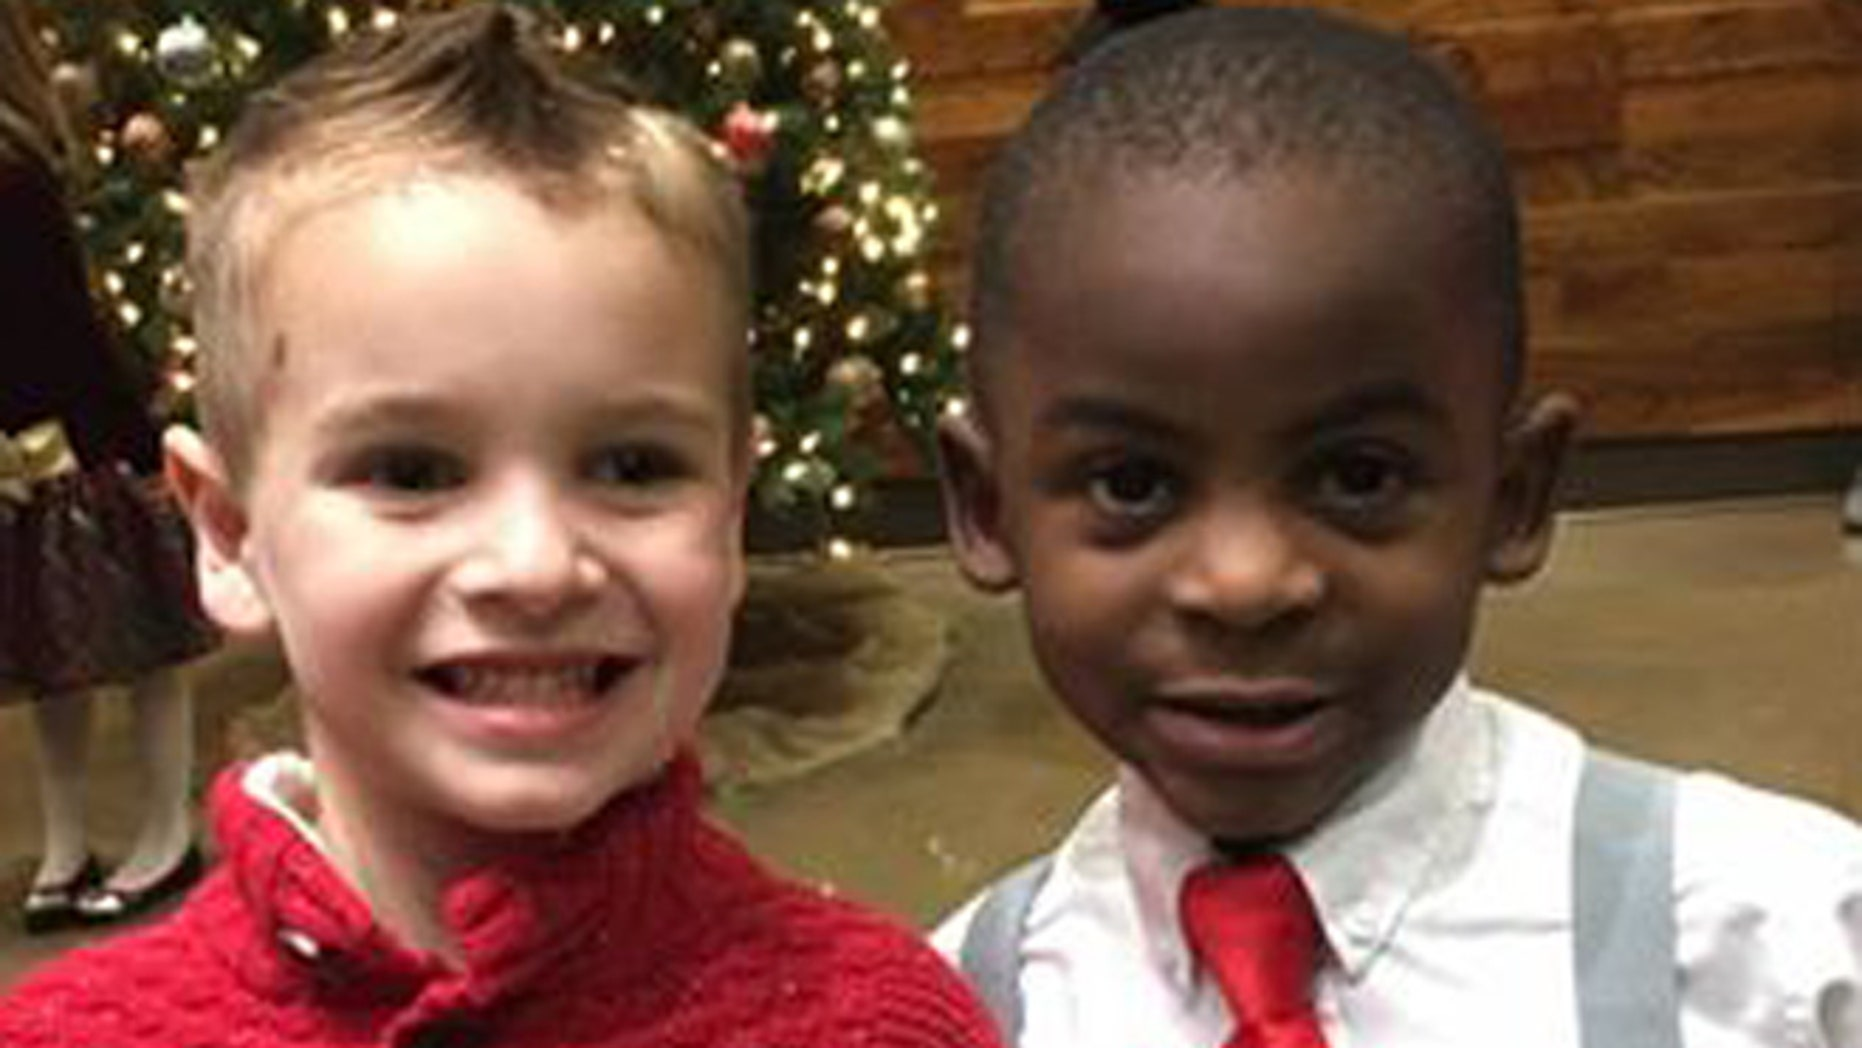 Lydia Stith Rosebush posted the photo of her son and his friend.